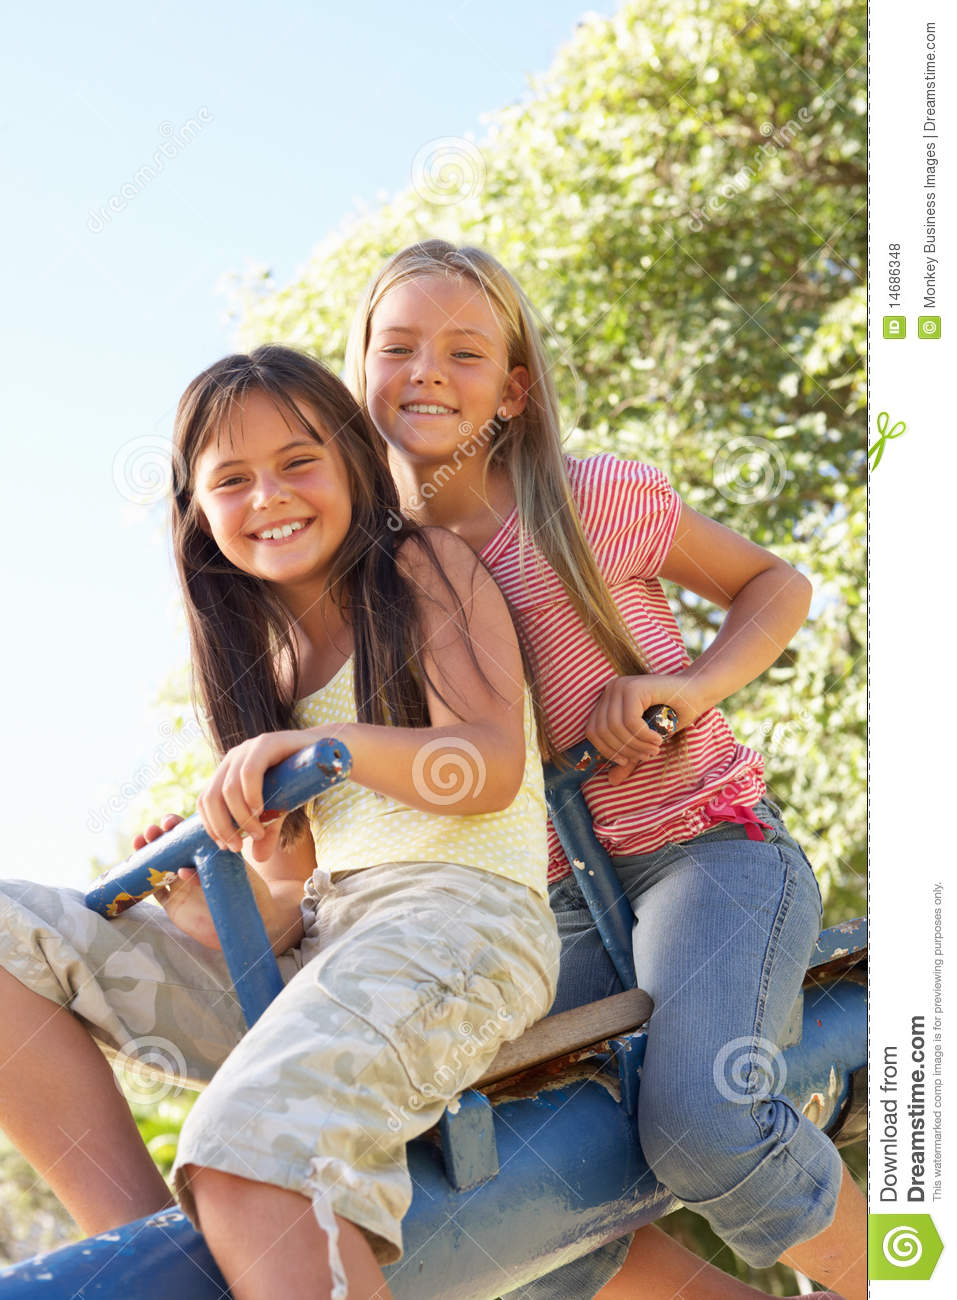 Music Classroom Design ~ Two girls riding on see saw in playground royalty free